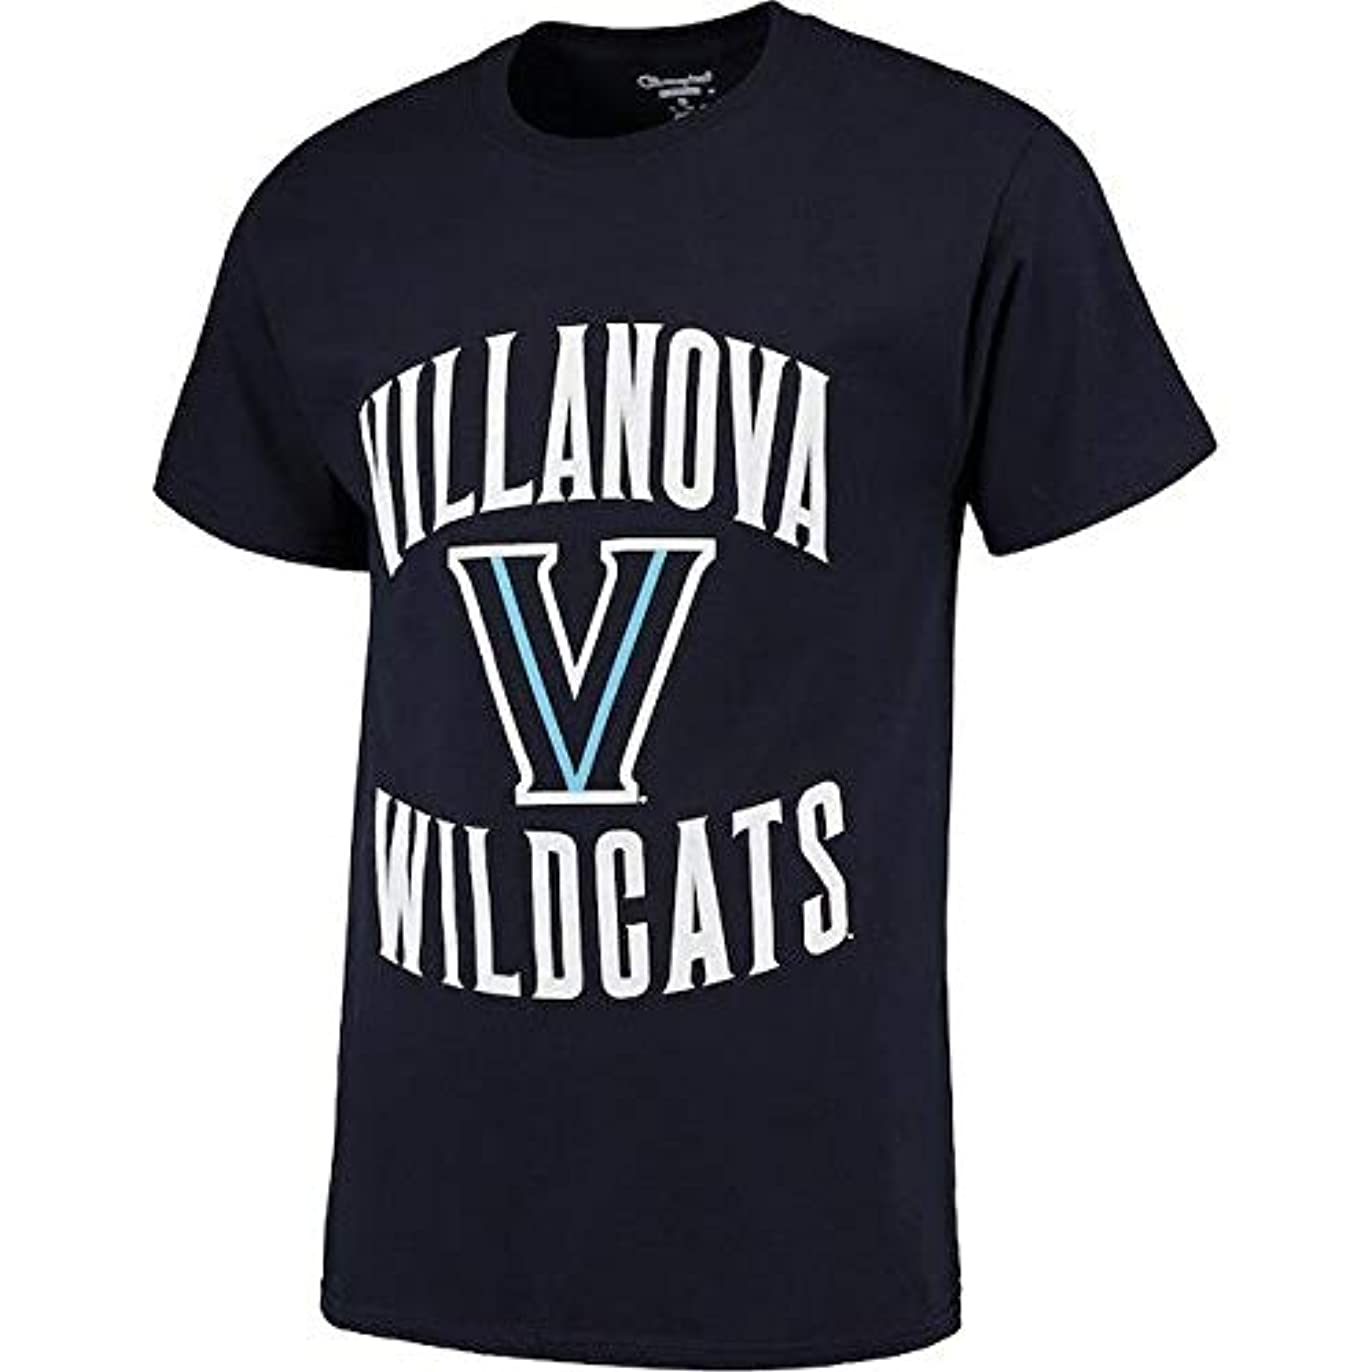 顎模索模索Champion Champion Villanova Wildcats Navy Tradition T-Shirt スポーツ用品 【並行輸入品】